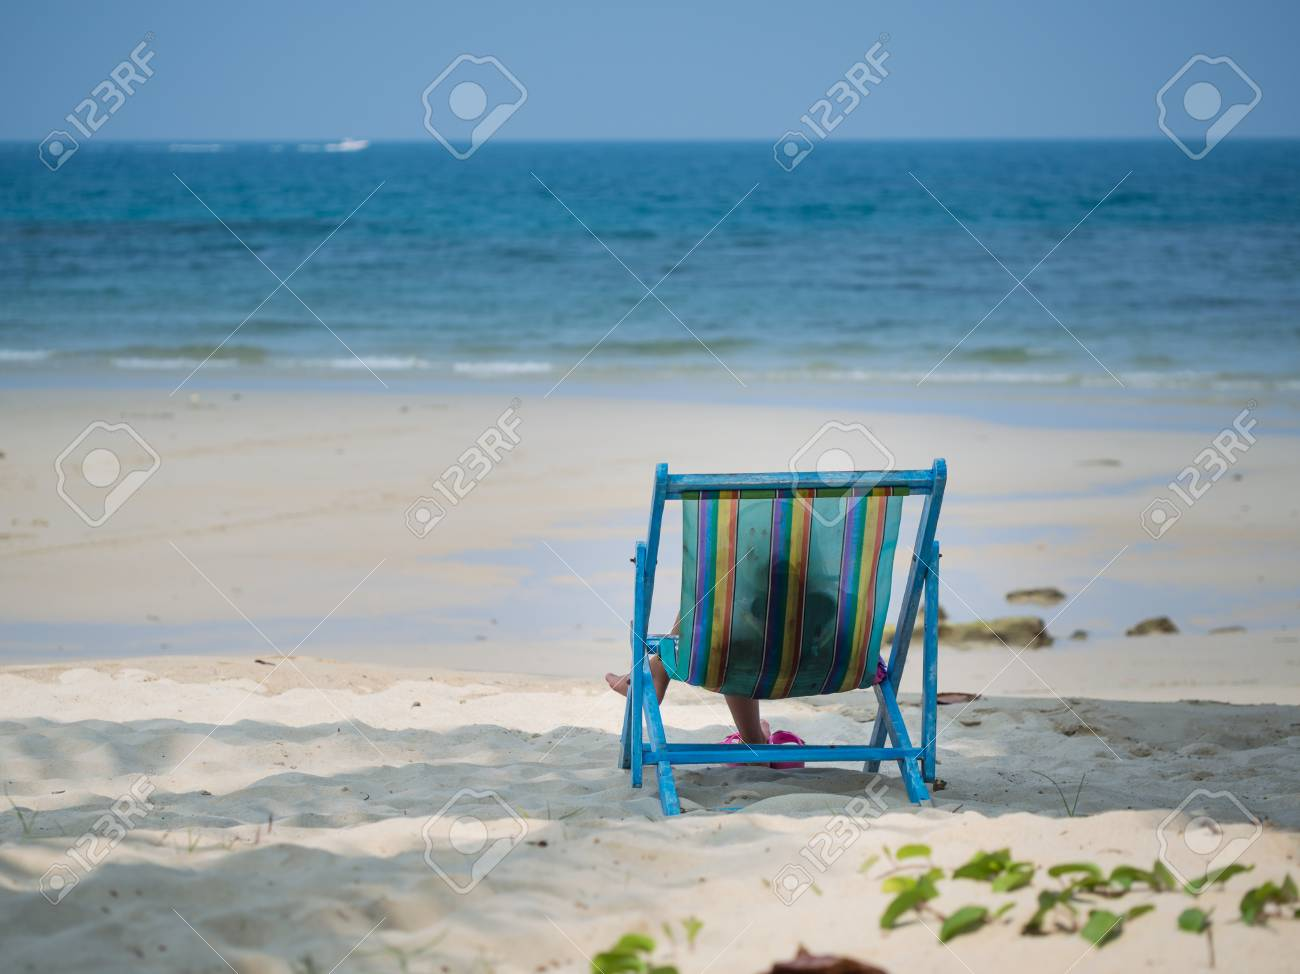 Kid sitting on beach chair and looking to the blue sea Stock Photo - 62265287 & Kid Sitting On Beach Chair And Looking To The Blue Sea Stock Photo ...